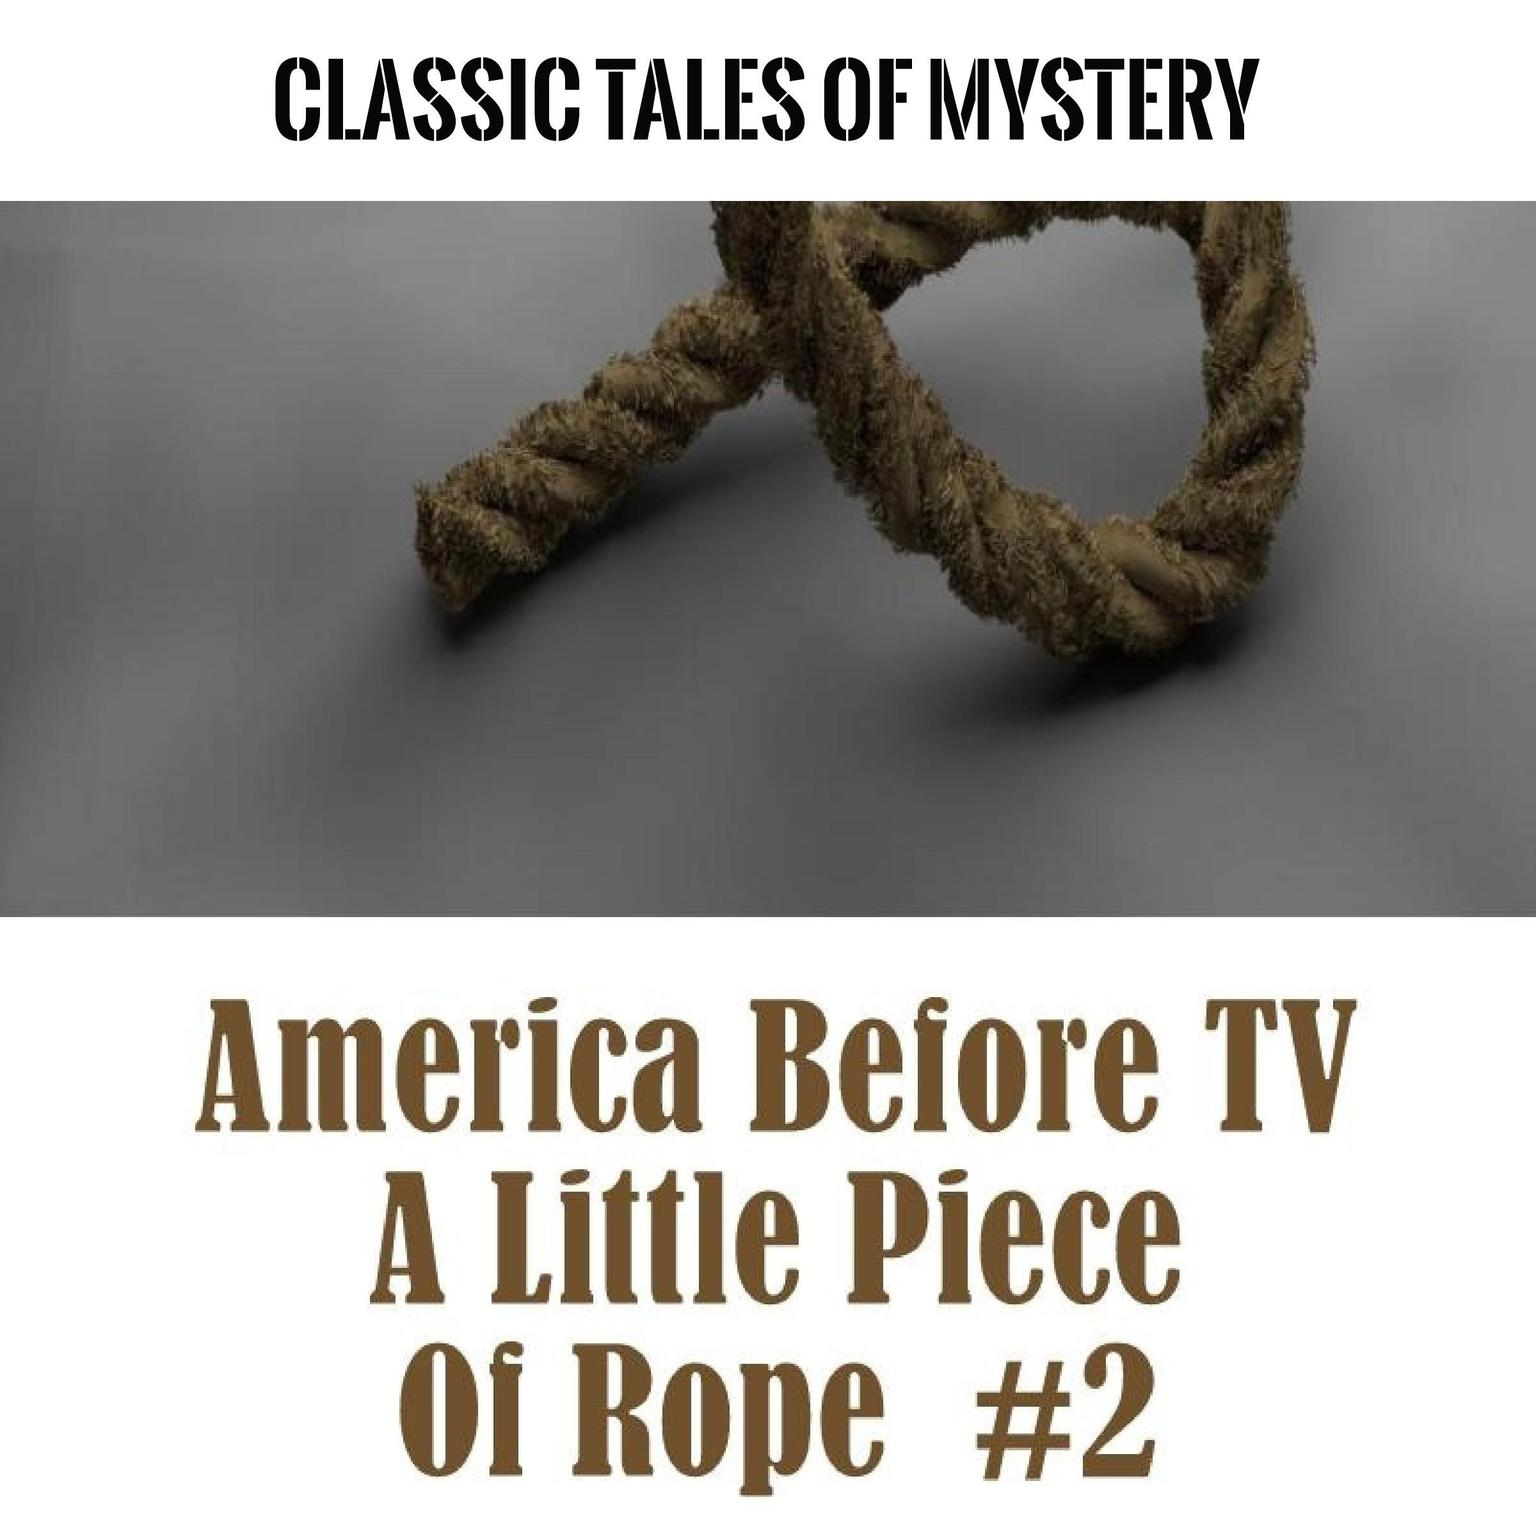 Printable America Before TV - A Little Piece Of Rope  #2 Audiobook Cover Art